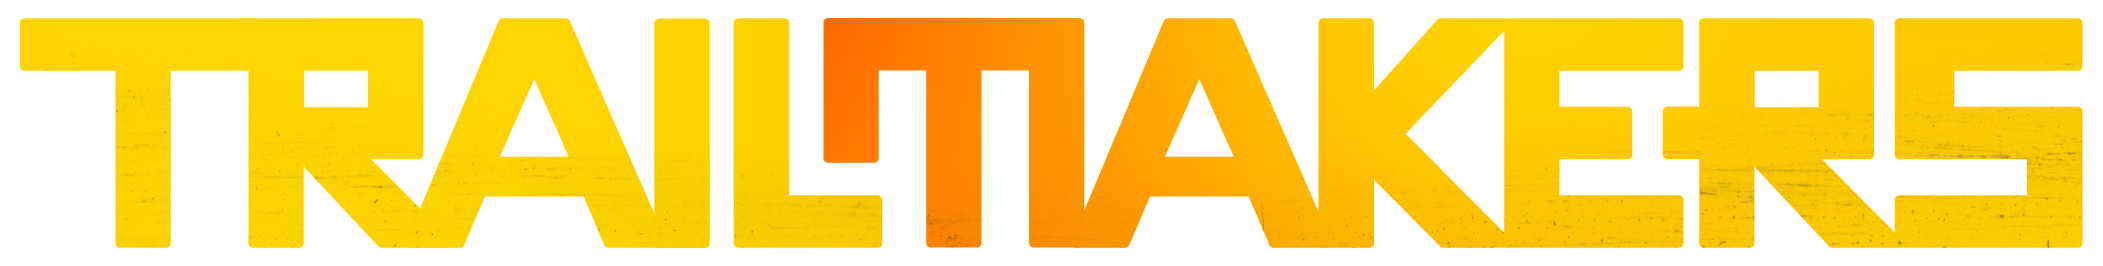 Trailmakers_Master_Logo.png